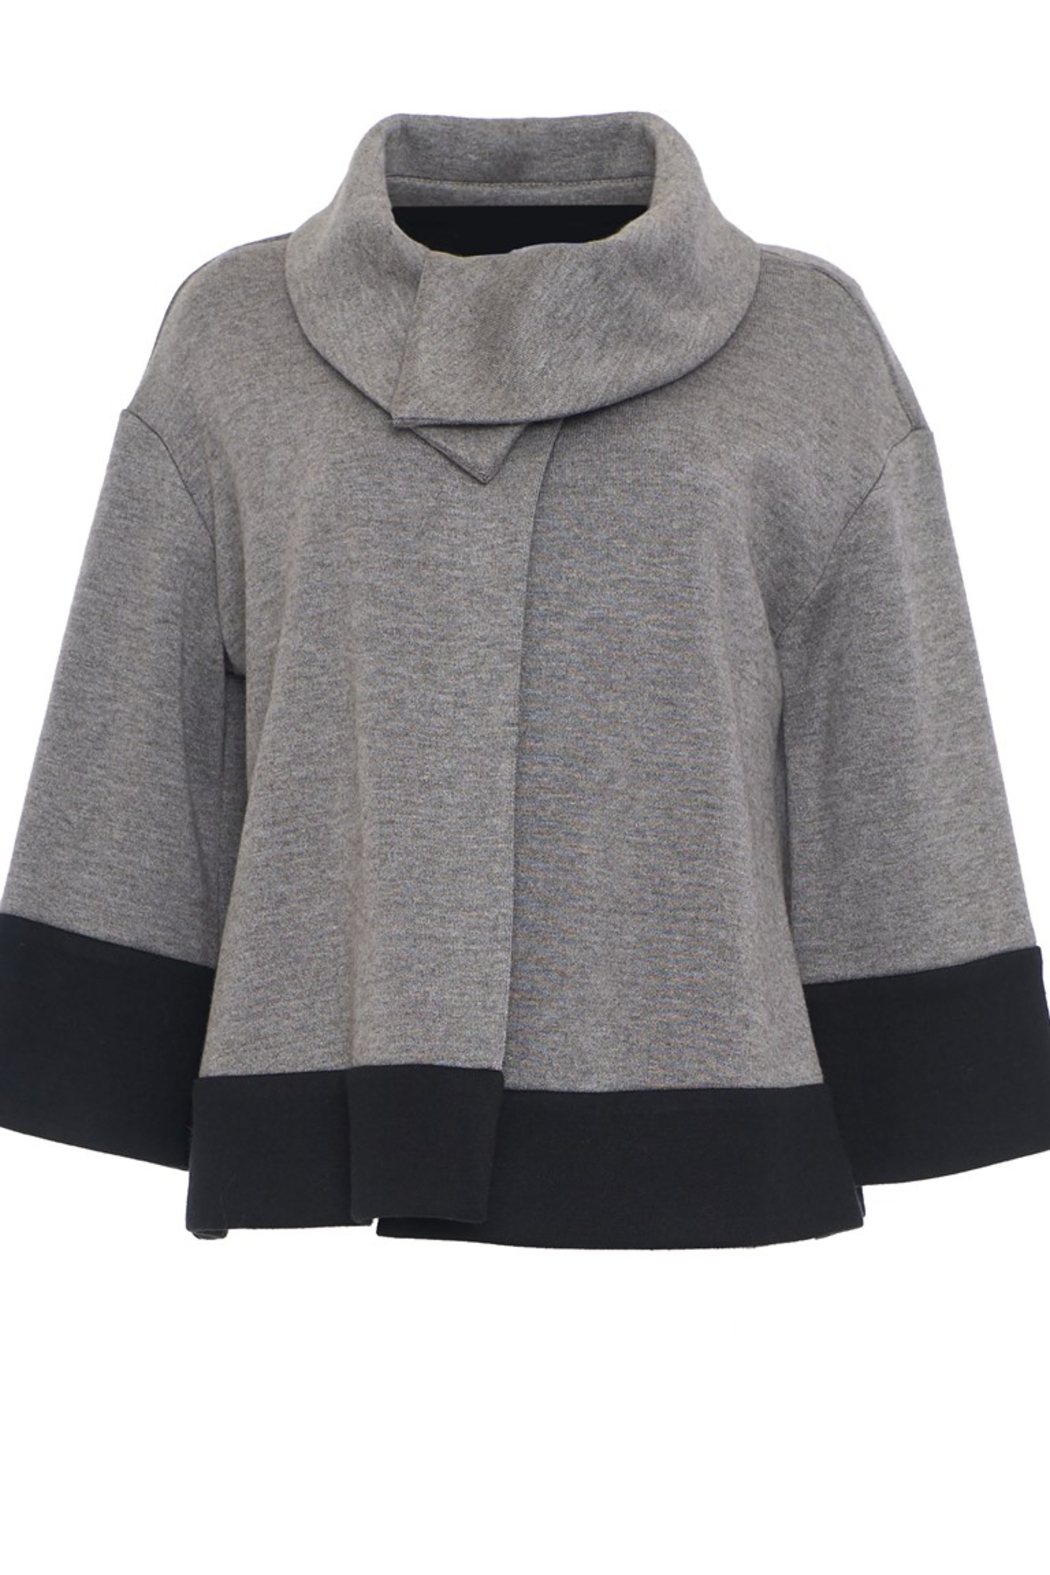 Joseph Ribkoff  Shawl Collar Sweater - Front Cropped Image